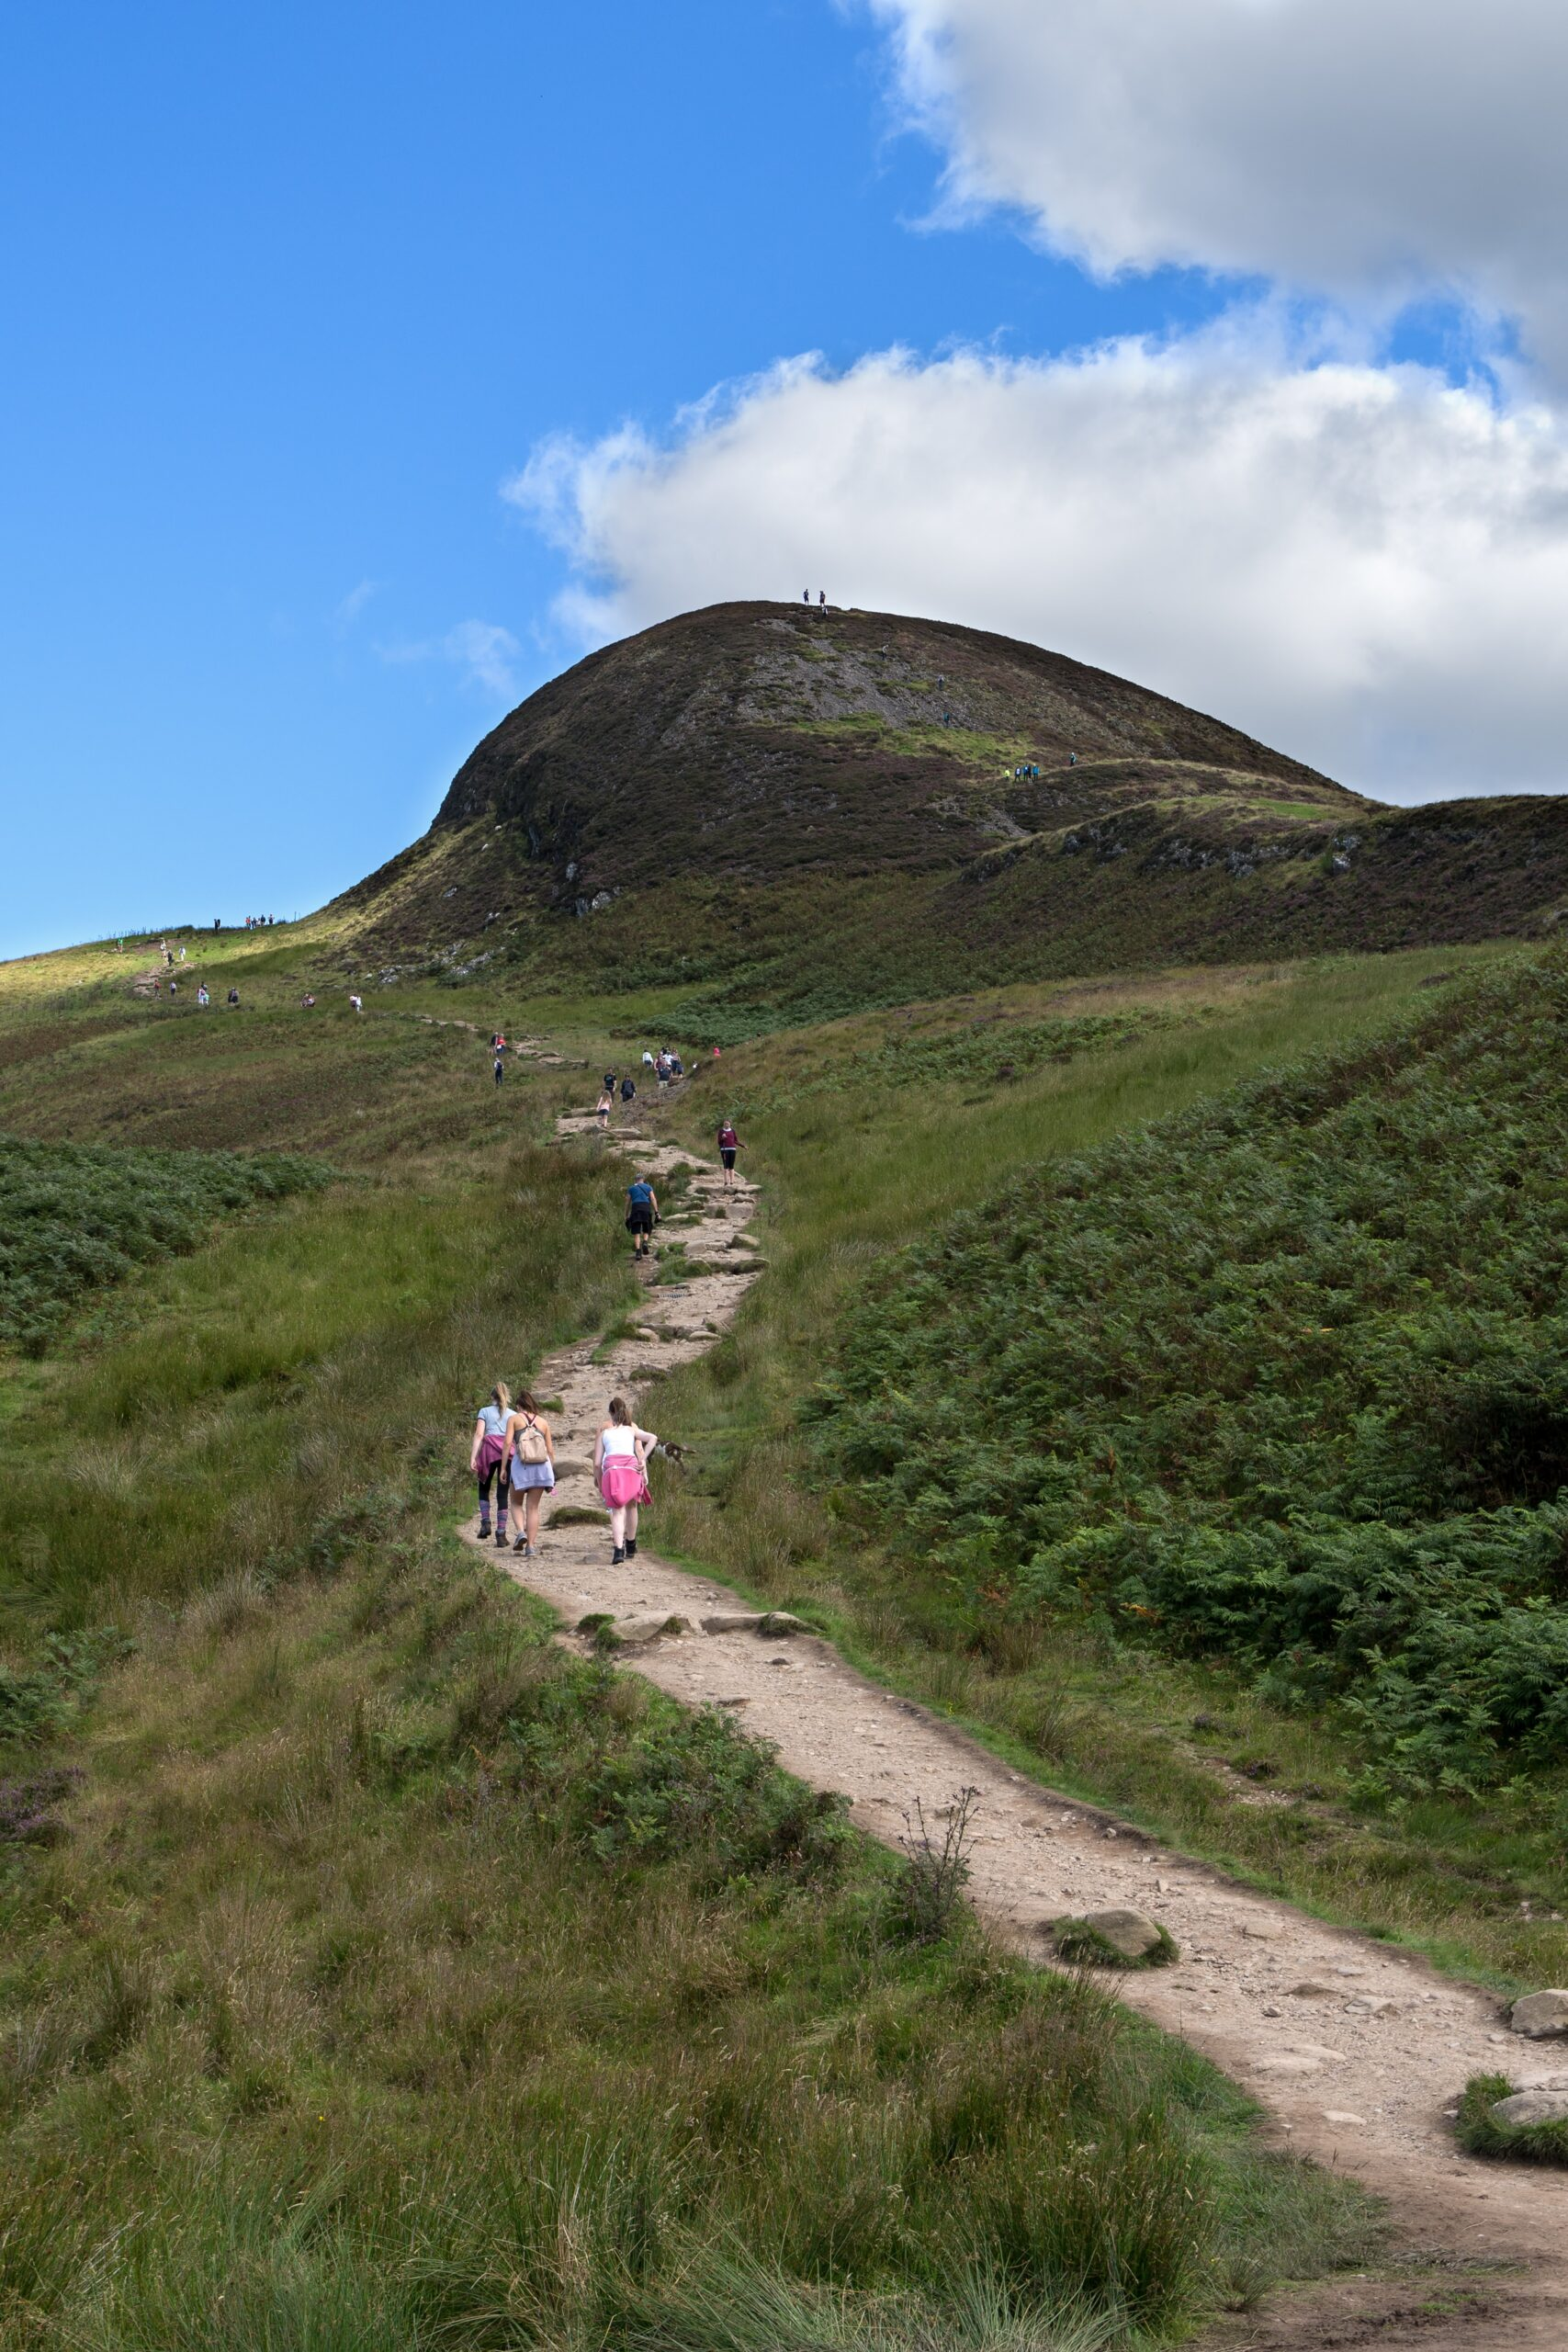 gary-ellis-Narrow hiking path up face of small mountain Scotlant awash with day hikers-unsplash